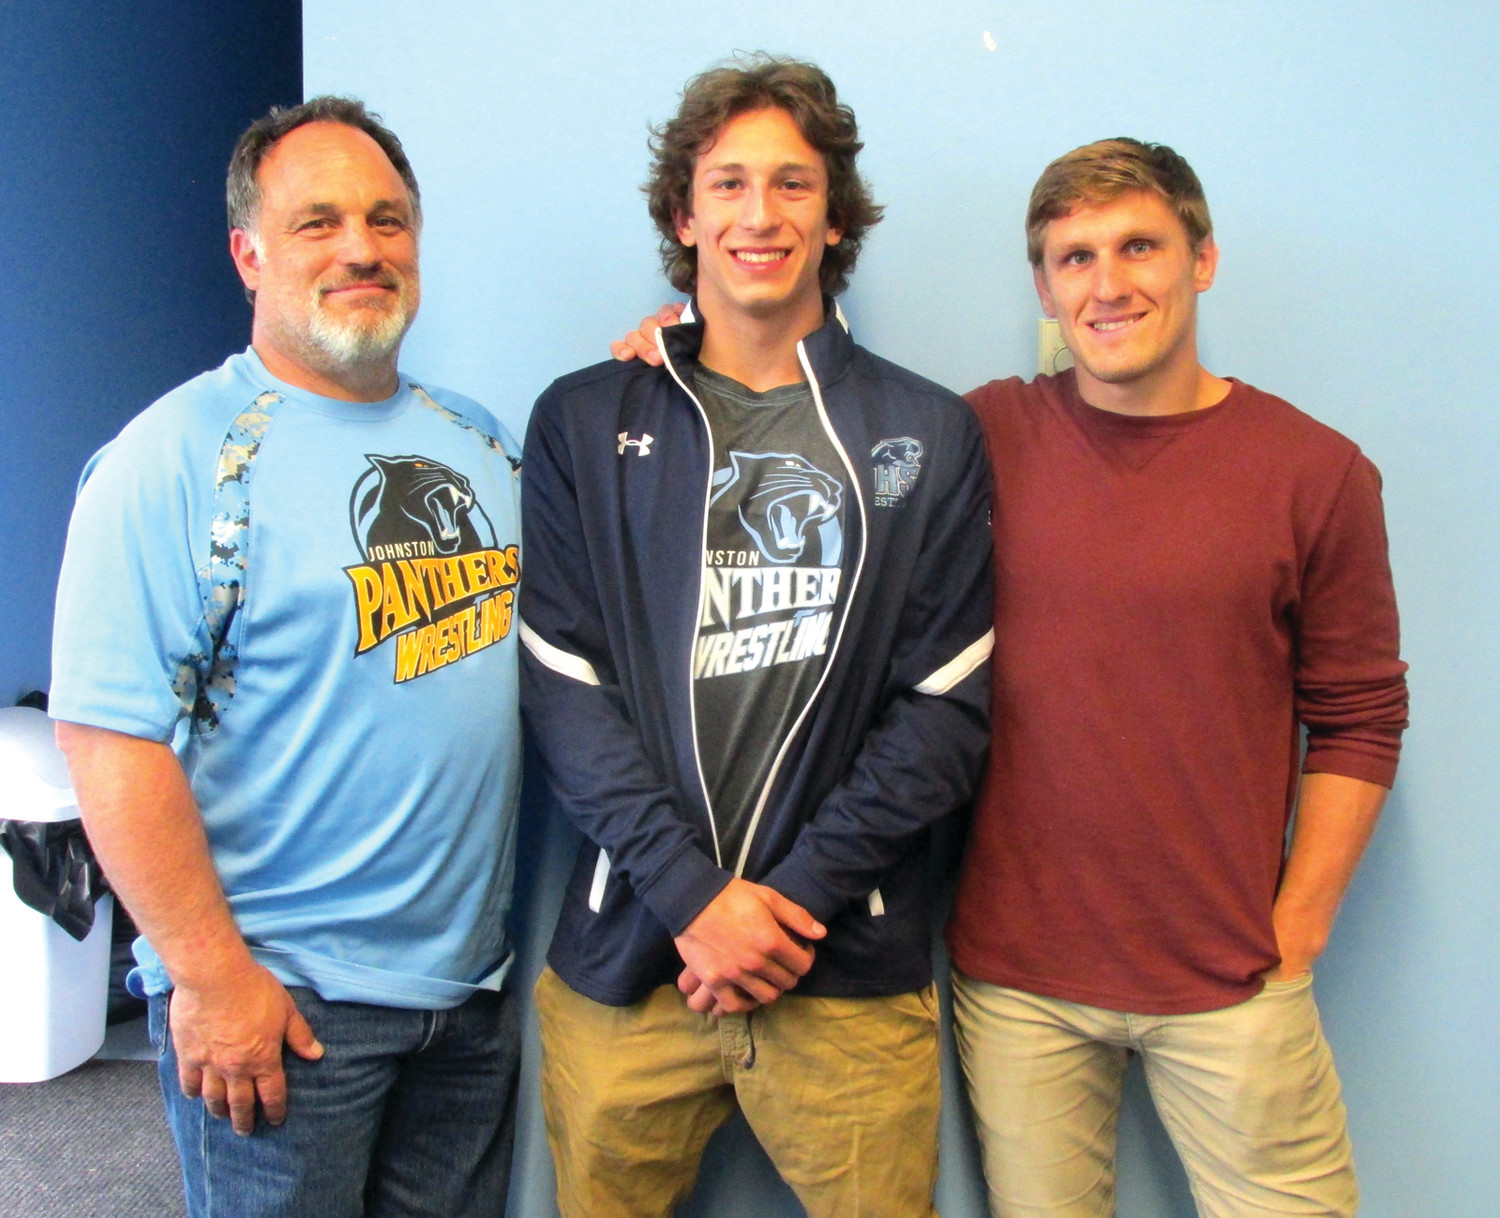 PROUD PANTHER: James Baccala III (center) is joined by his father James Baccala Jr. (left) and RI Wrestling USA Chairman Steven Keith who recently presented the one-time JHS Panther wrestling team captain the Rico Lomastro Scholarship.